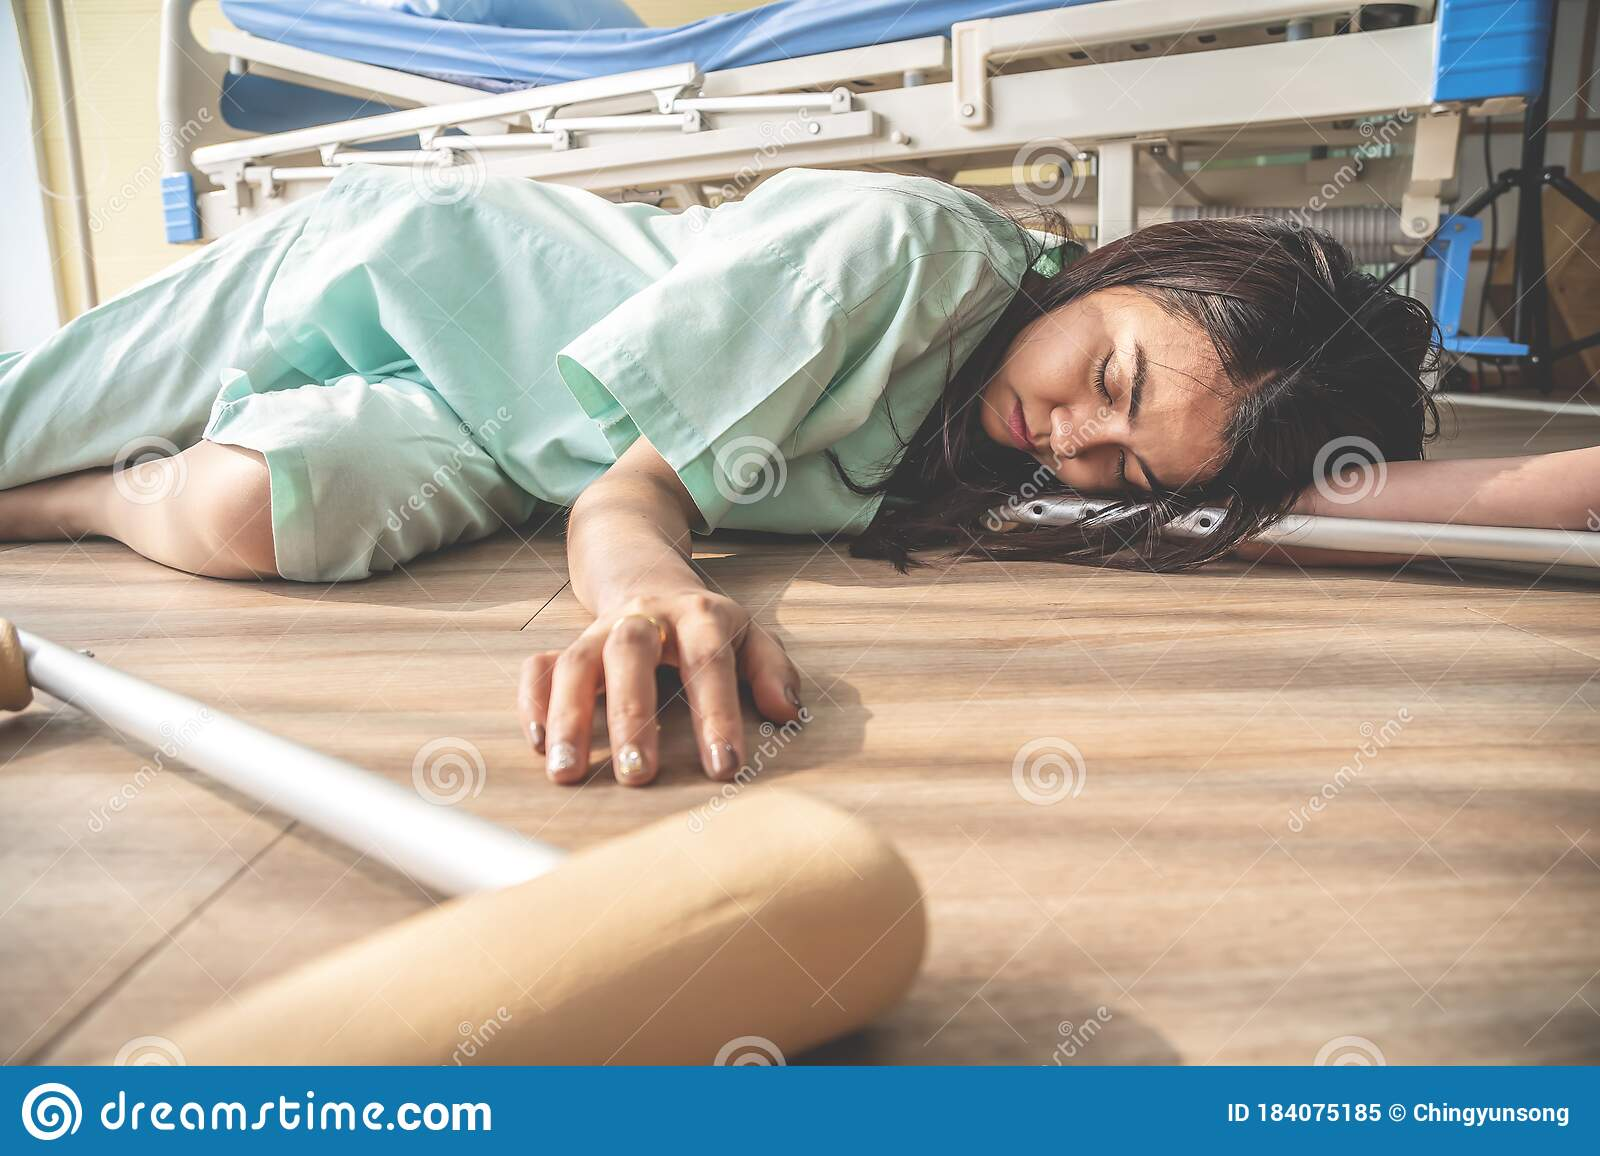 The Female Patient Fell Unconscious Lying On The Floor At ...